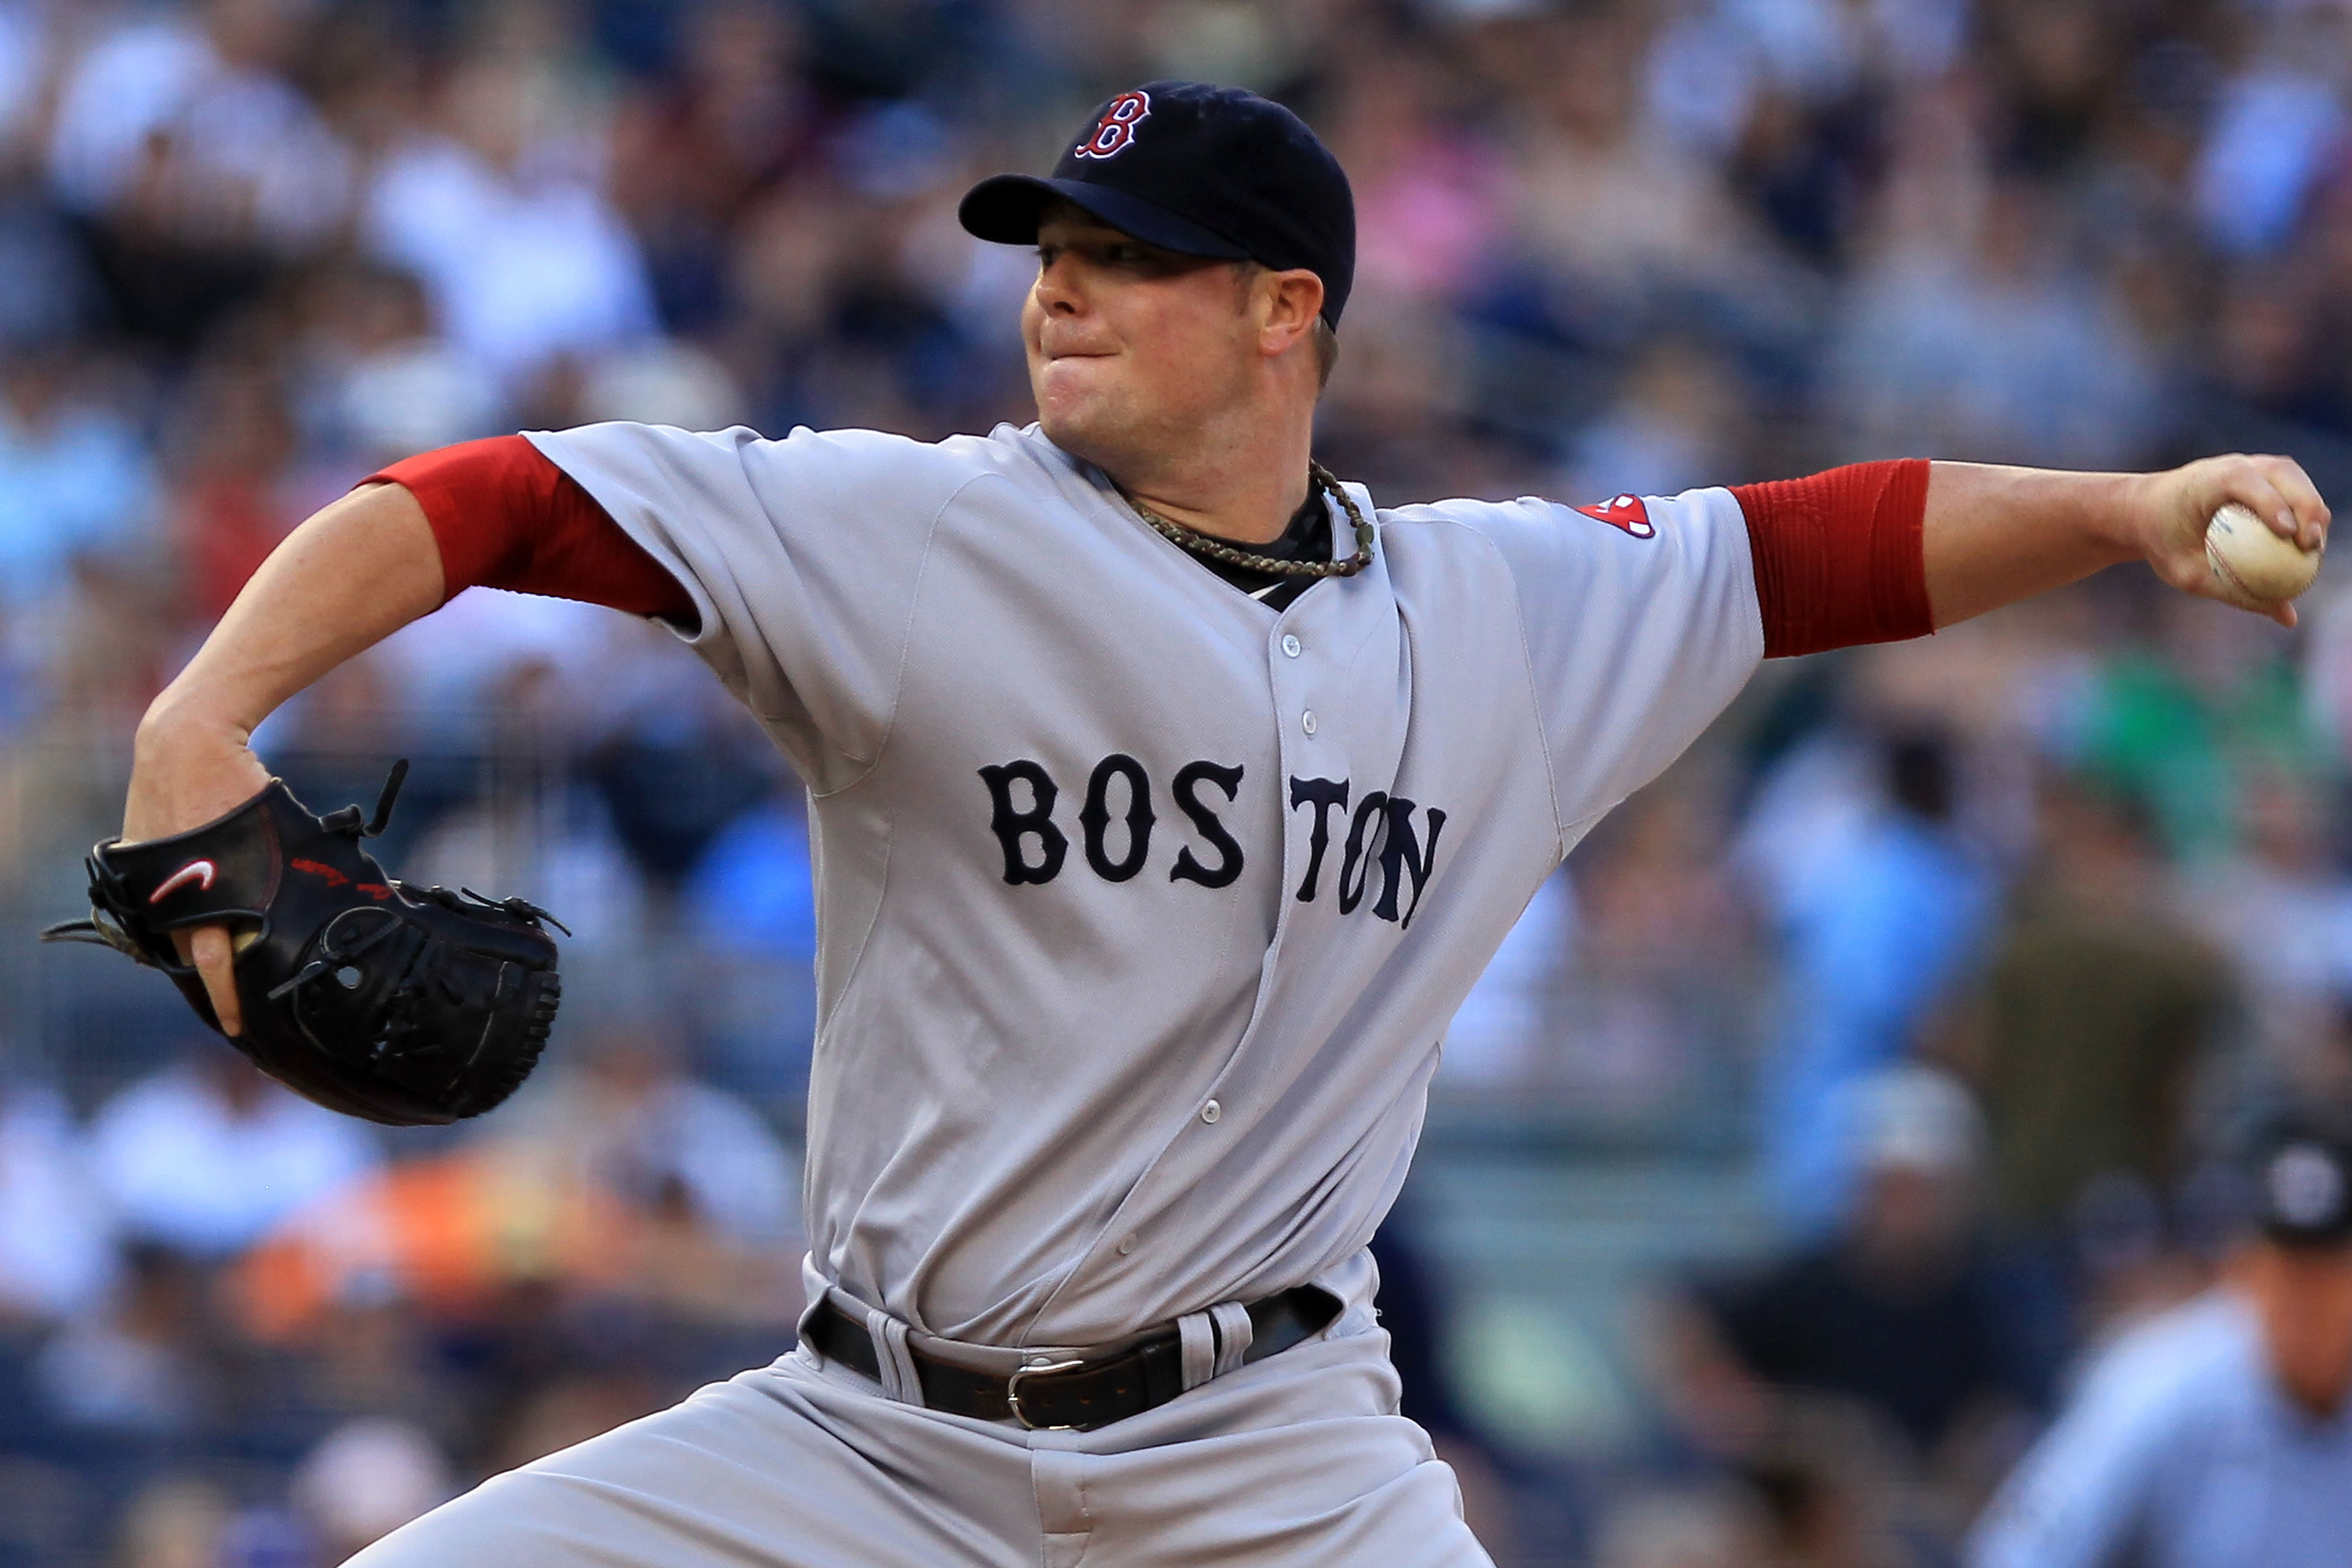 NEW YORK - SEPTEMBER 25:  Jon Lester #31 of the Boston Red Sox pitches against the New York Yankees during their game on September 25, 2010 at Yankee Stadium in the Bronx borough of New York City.  (Photo by Chris McGrath/Getty Images)